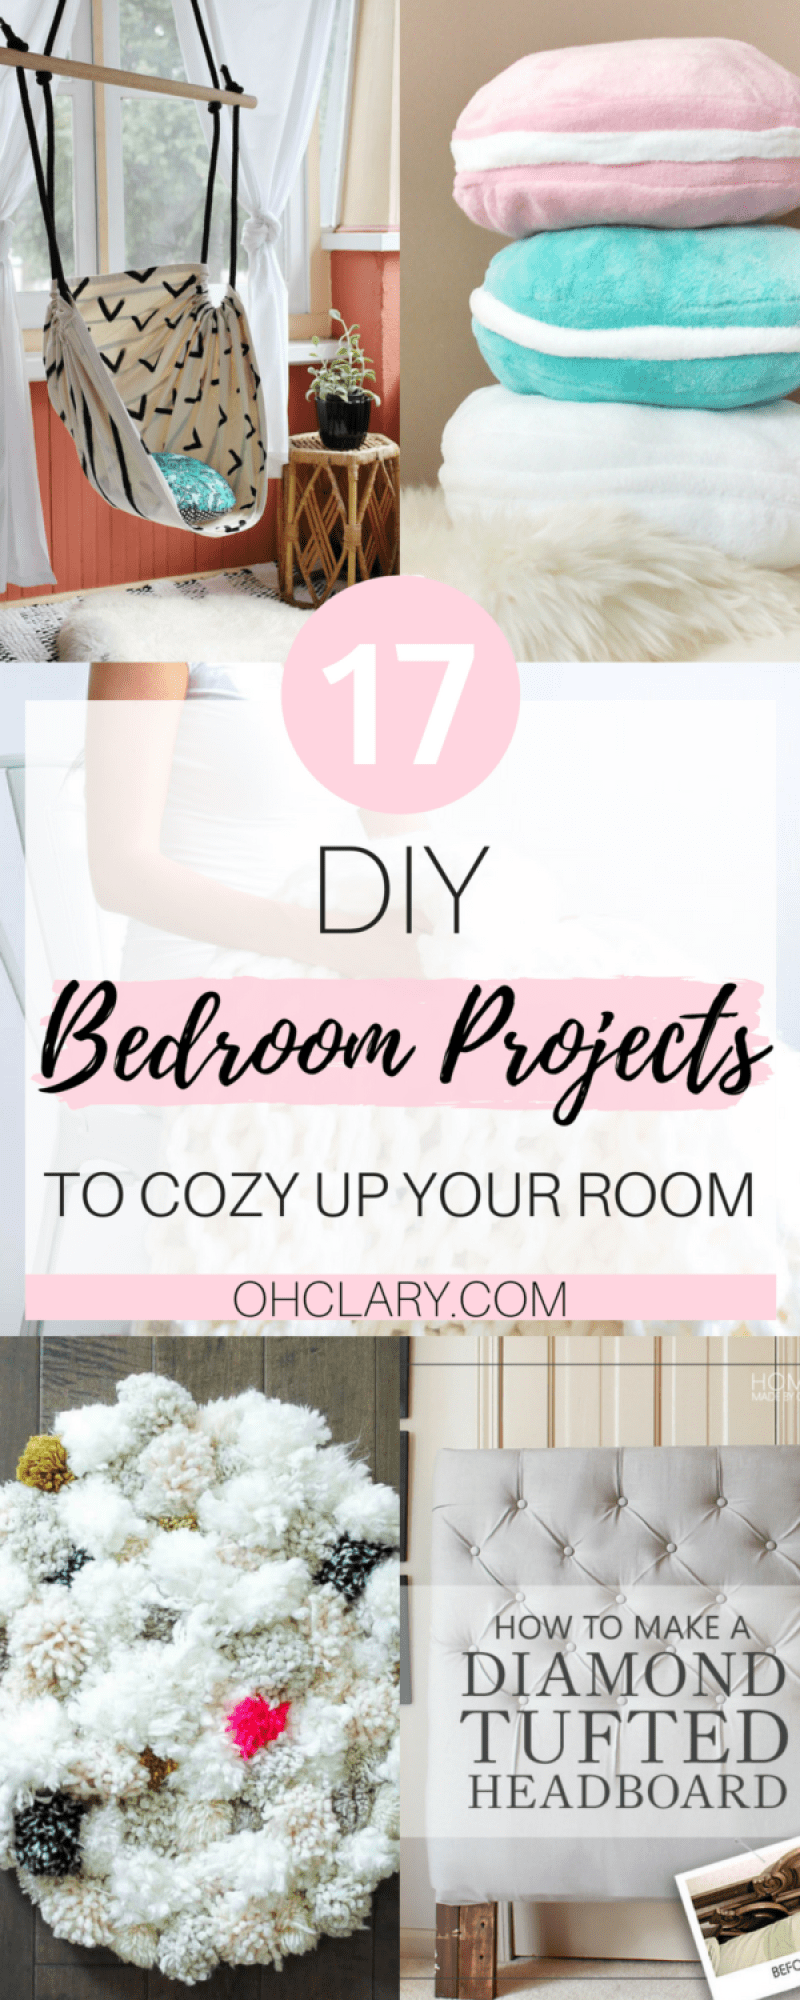 17 diy bedroom projects to make your room super cozy ohclary